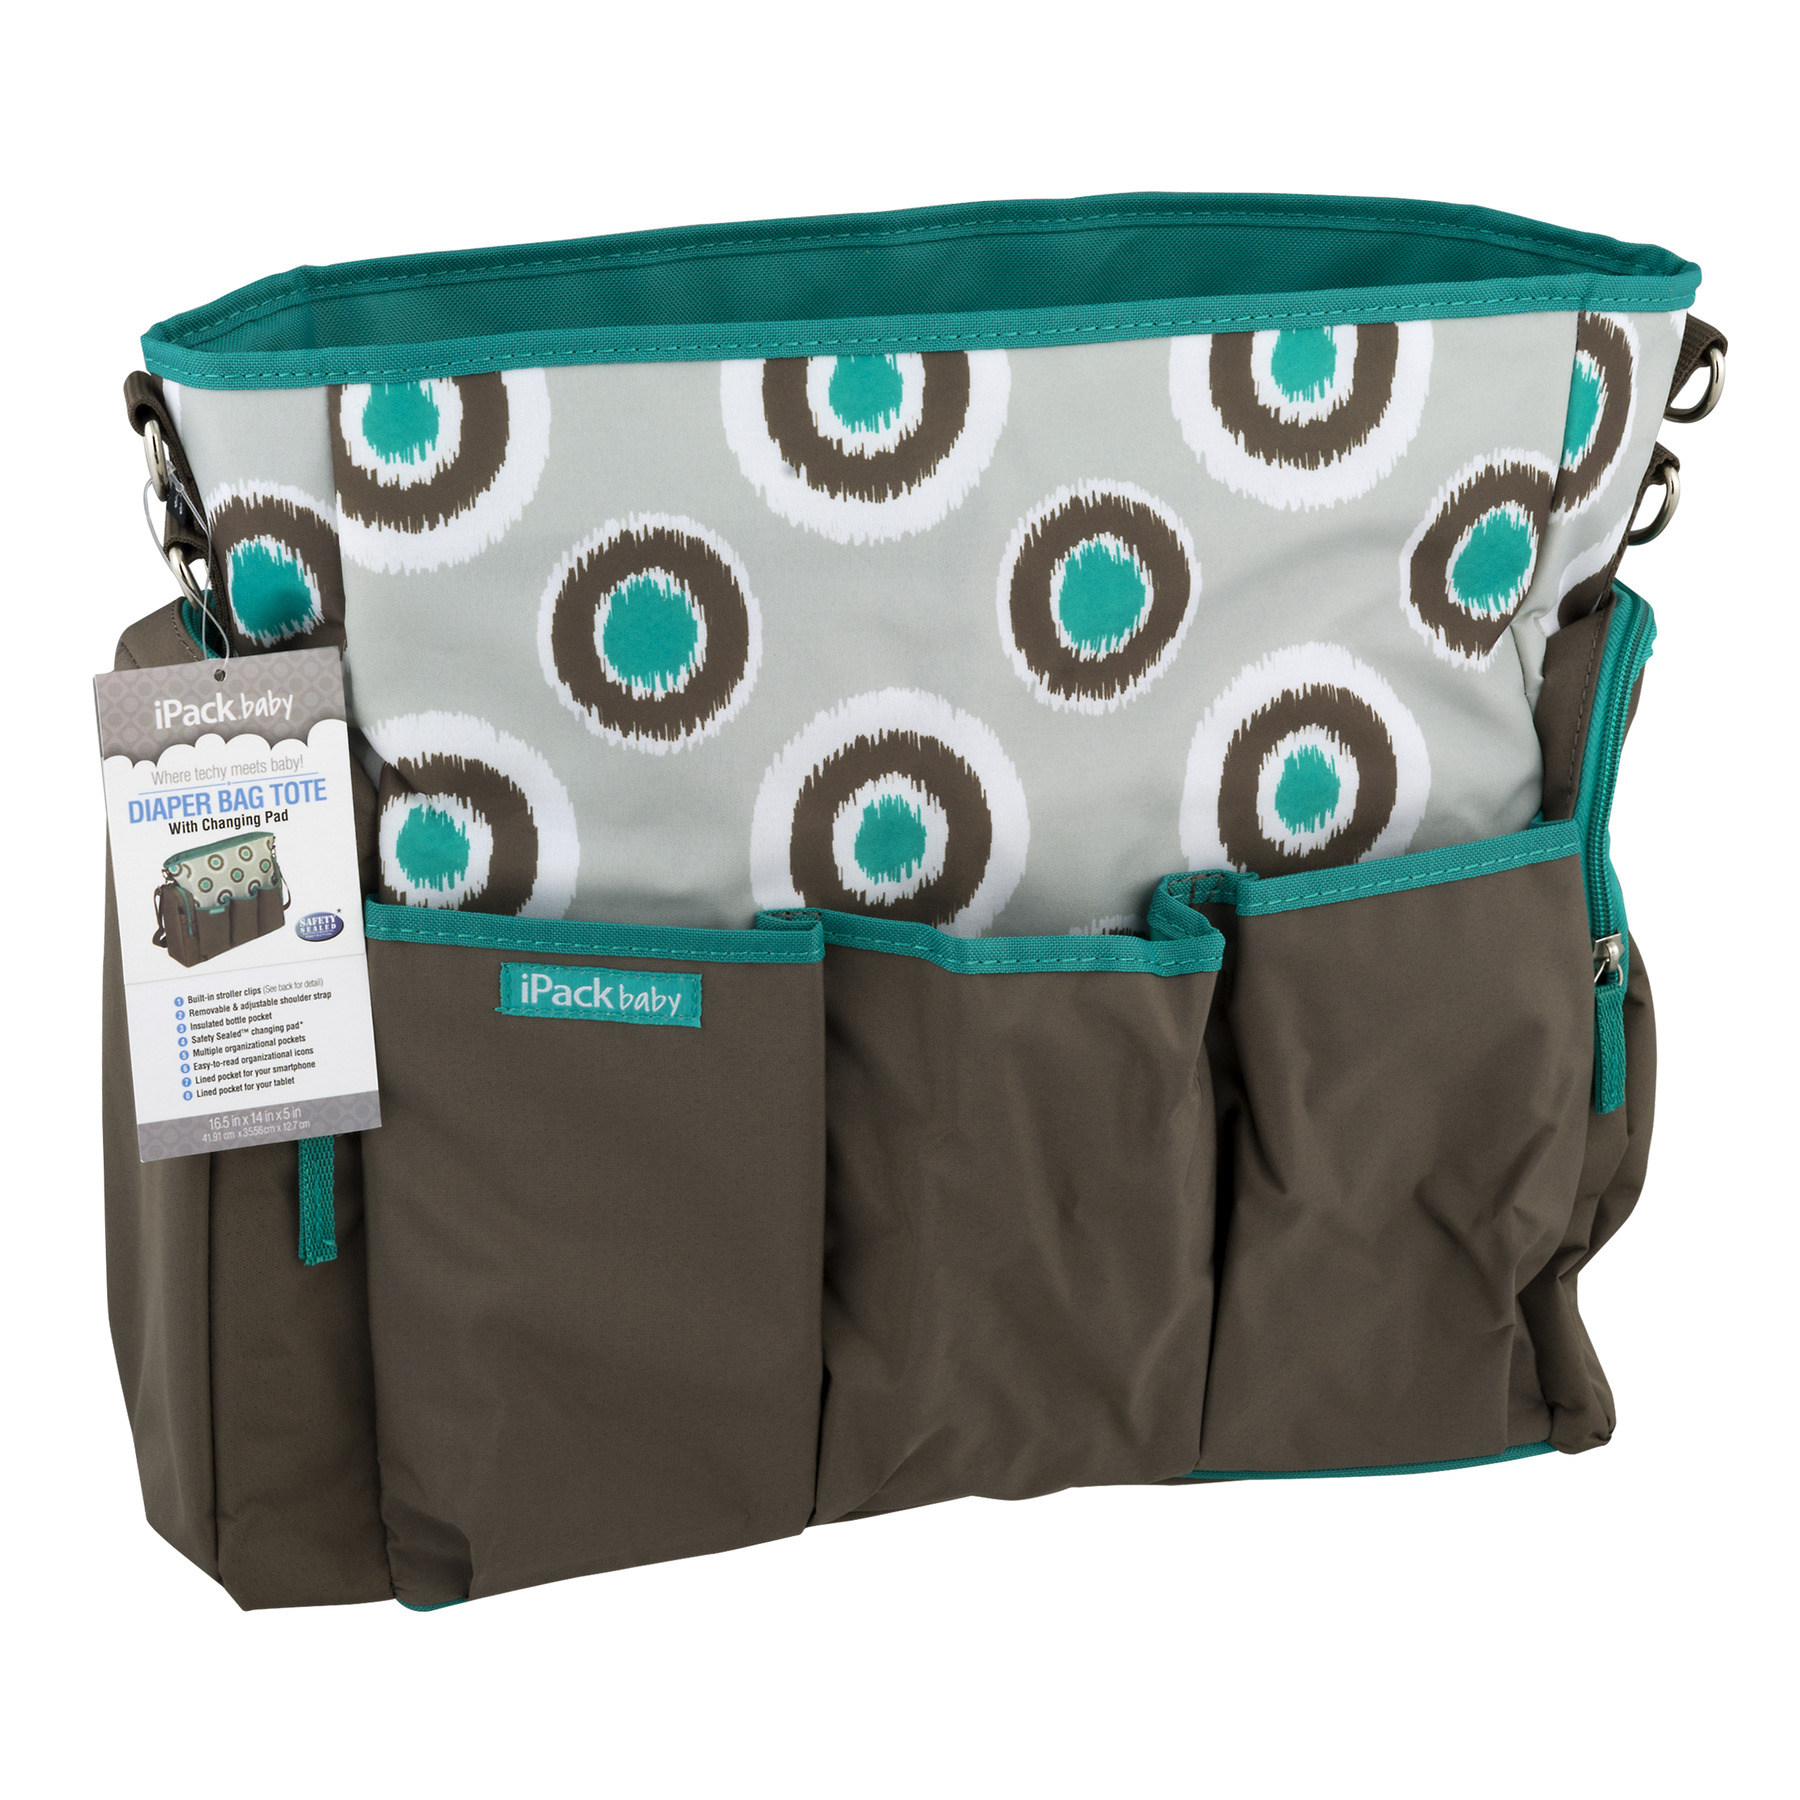 iPack Baby Diaper Bag Tote iKat Design, 1.0 CT